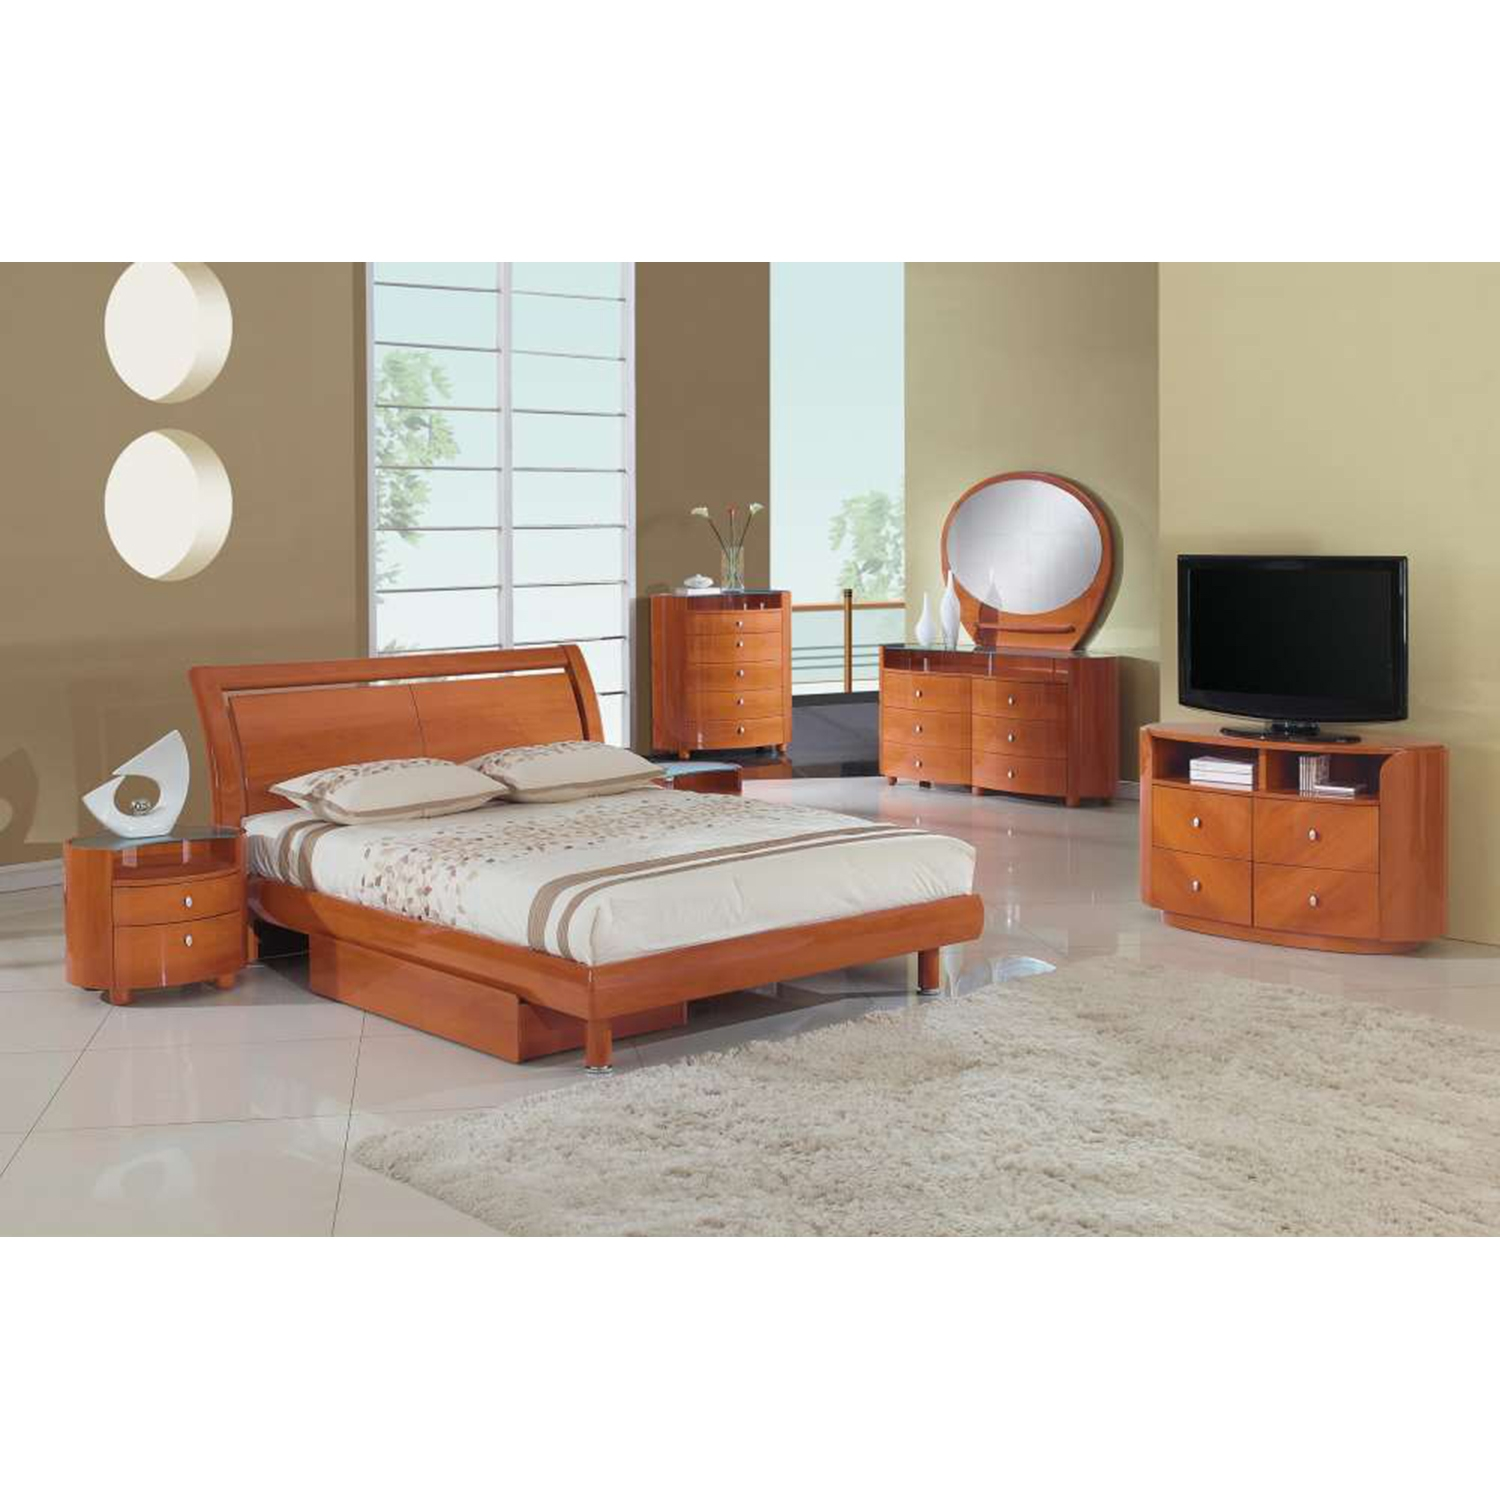 Emily Bedroom Set in Cherry - GLO-EMILY-B86-CH-SET